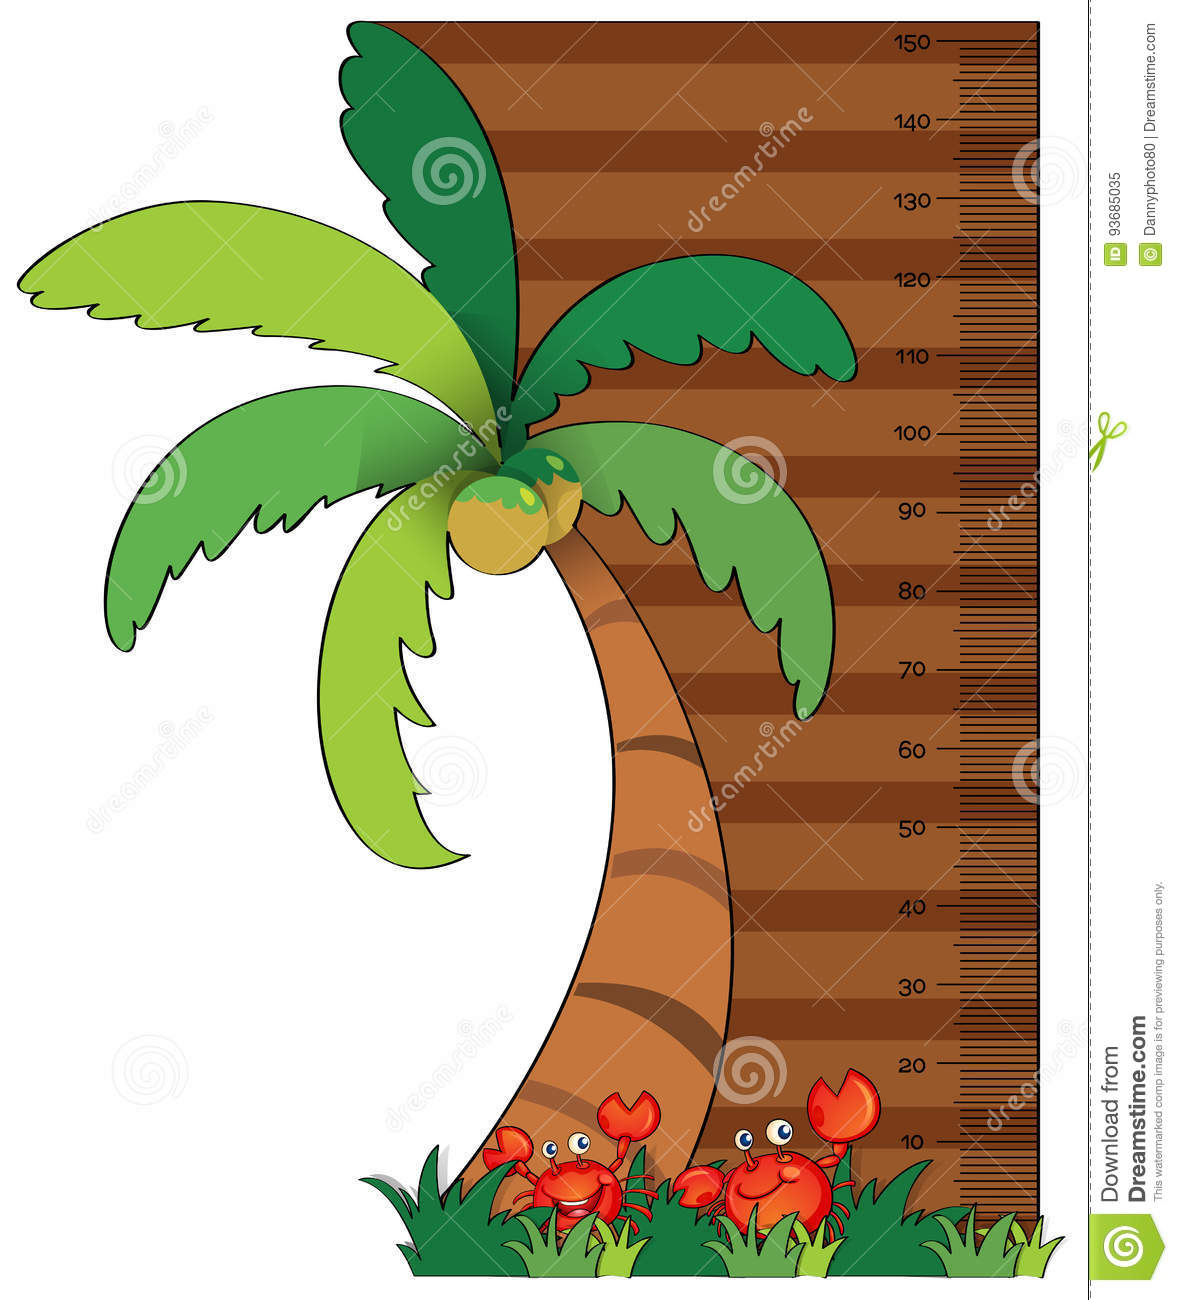 Height measurement chart with coconut tree